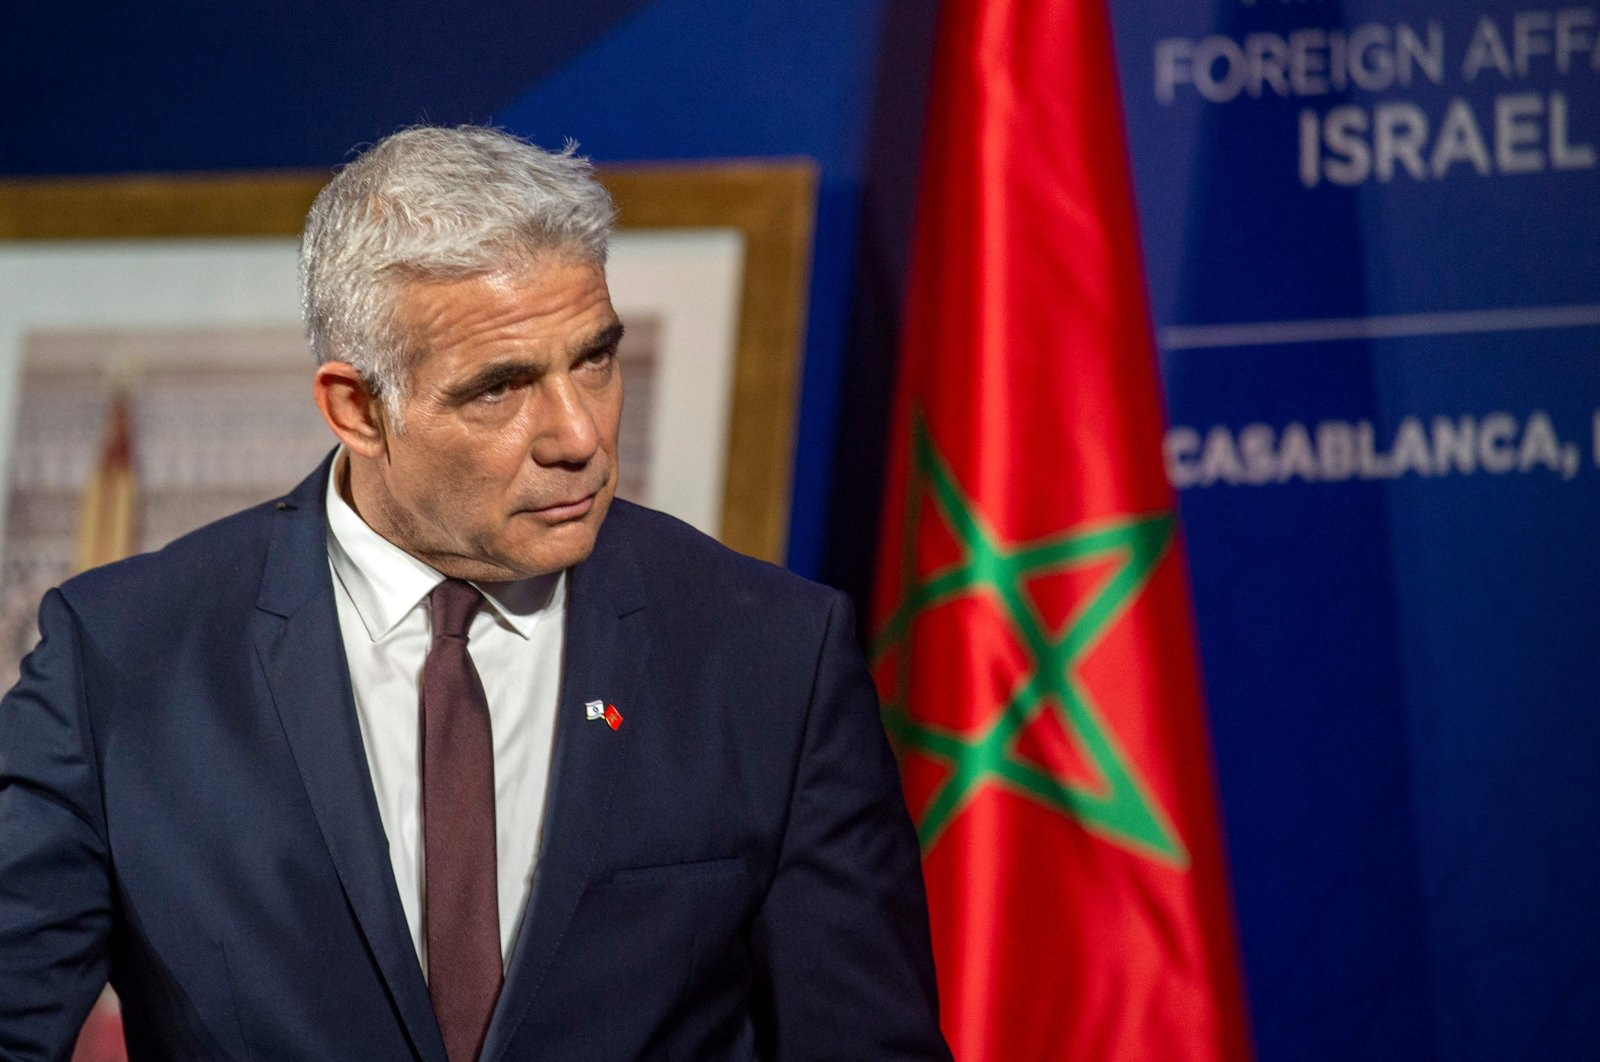 Israeli alternate Prime Minister and Foreign Minister Yair Lapid gives a news conference in Casablanca, Morocco, Aug. 12, 2021. (AFP Photo)